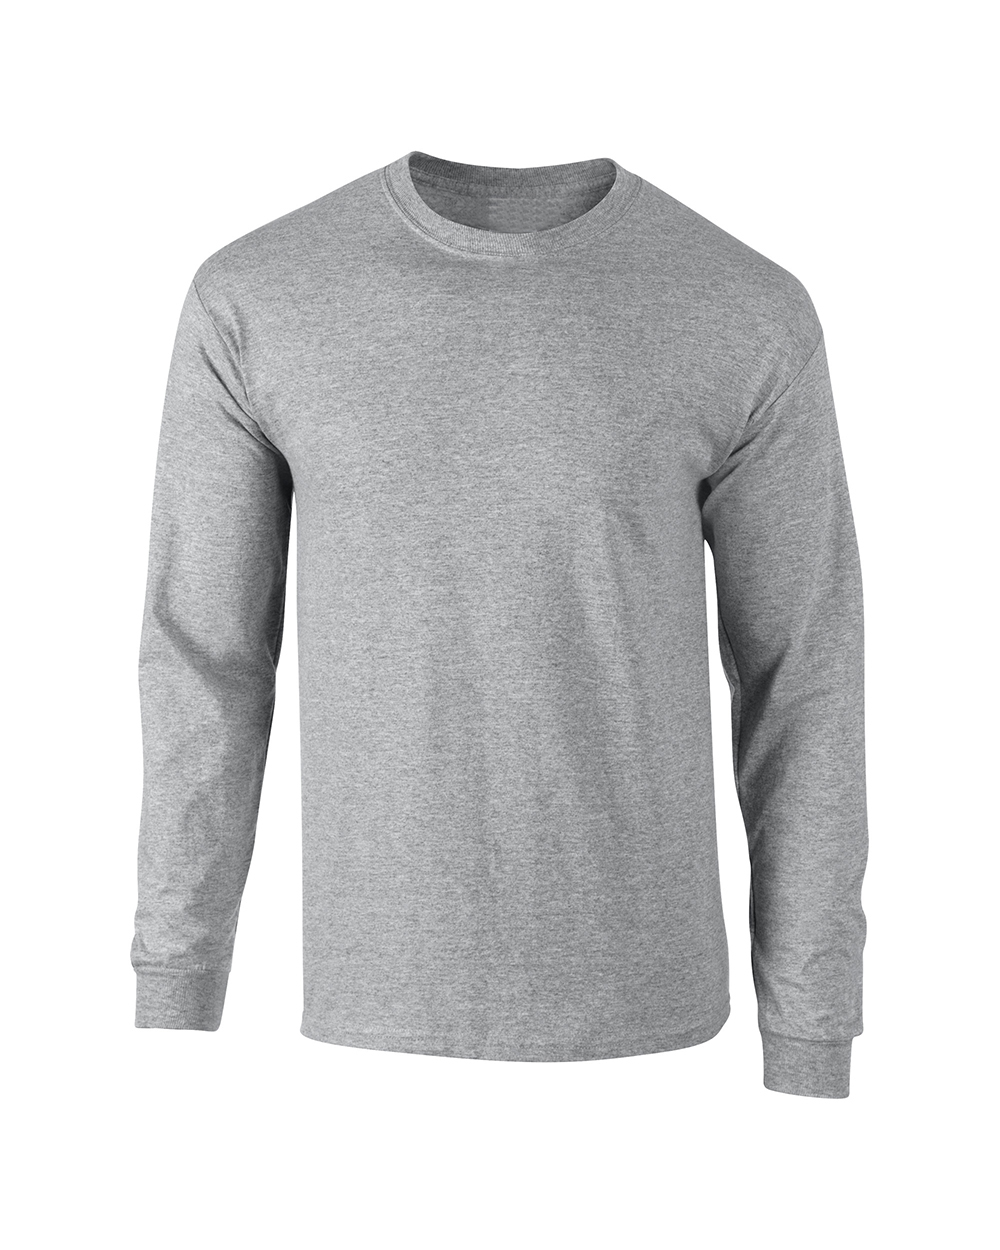 Find long sleeve t-shirts in printed and solid styles, made with the softest fabrics. Whether it's a striped long-sleeve tee or a simple white tee with a scallop hem, you .